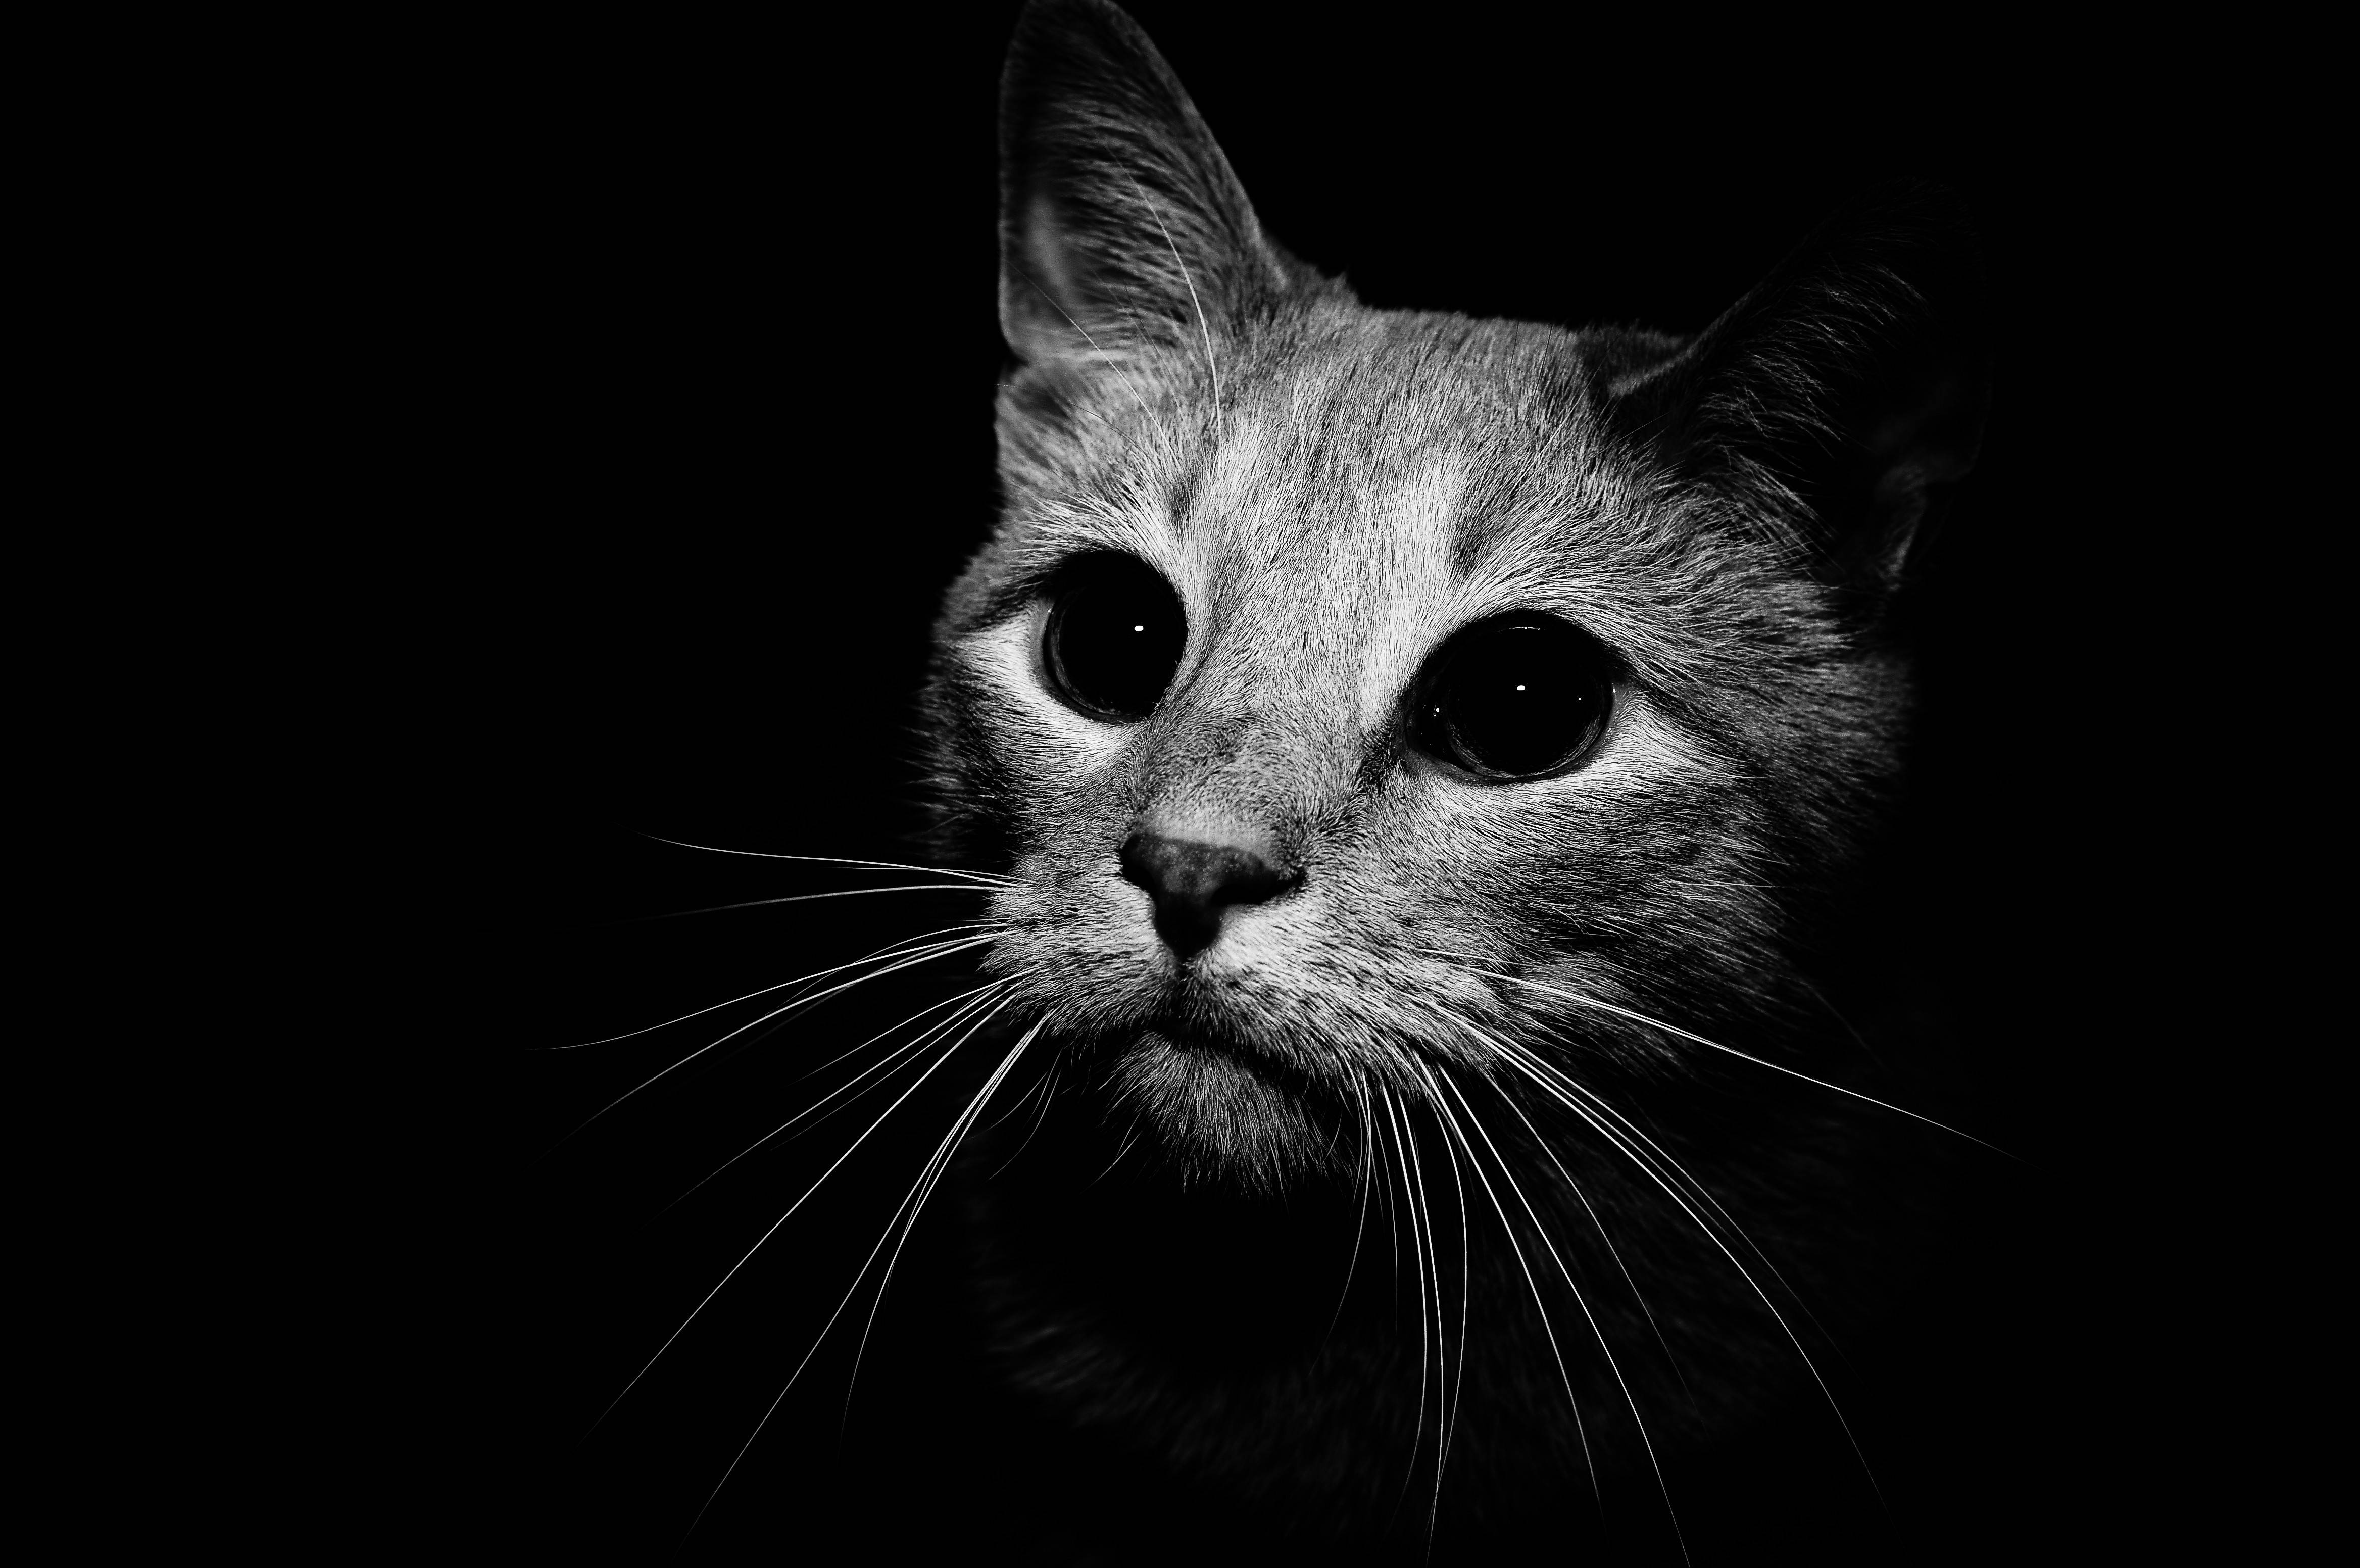 Black And White Kitten Wallpapers Top Free Black And White Kitten Backgrounds Wallpaperaccess